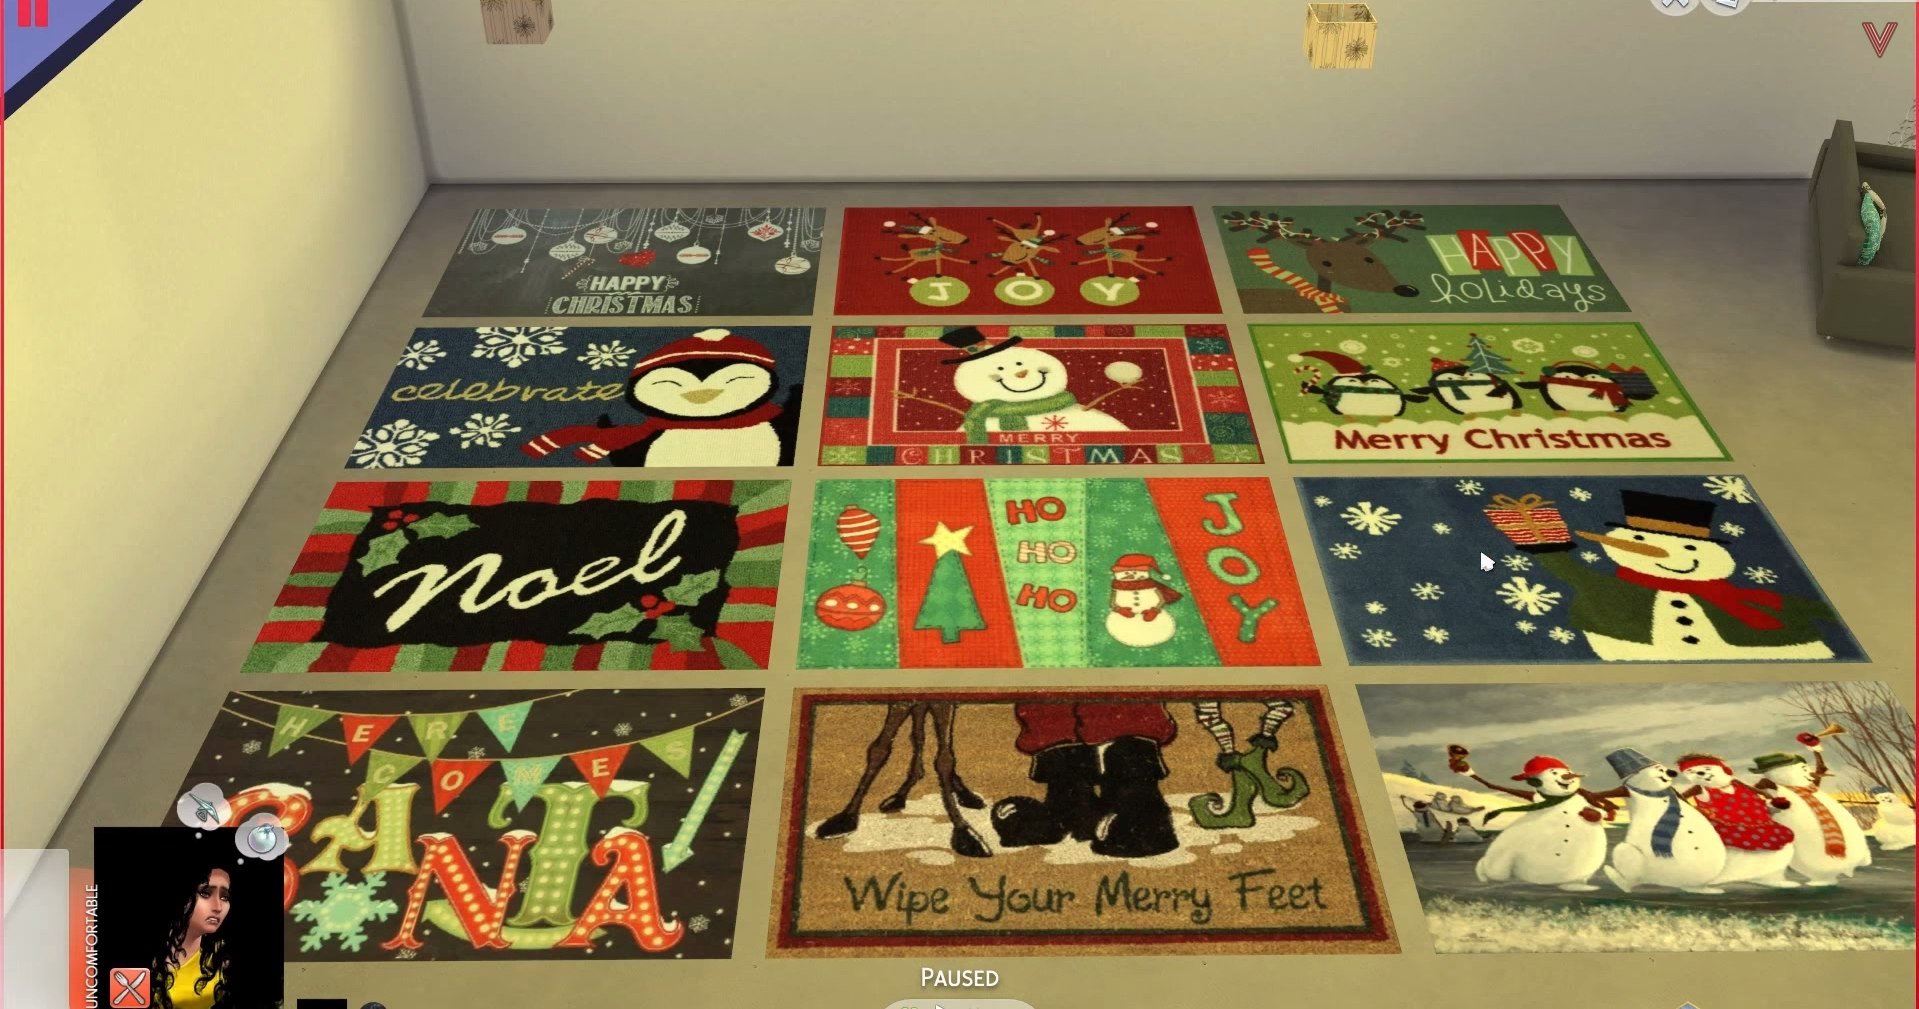 How To Bring More Holiday Cheer To The Sims 4